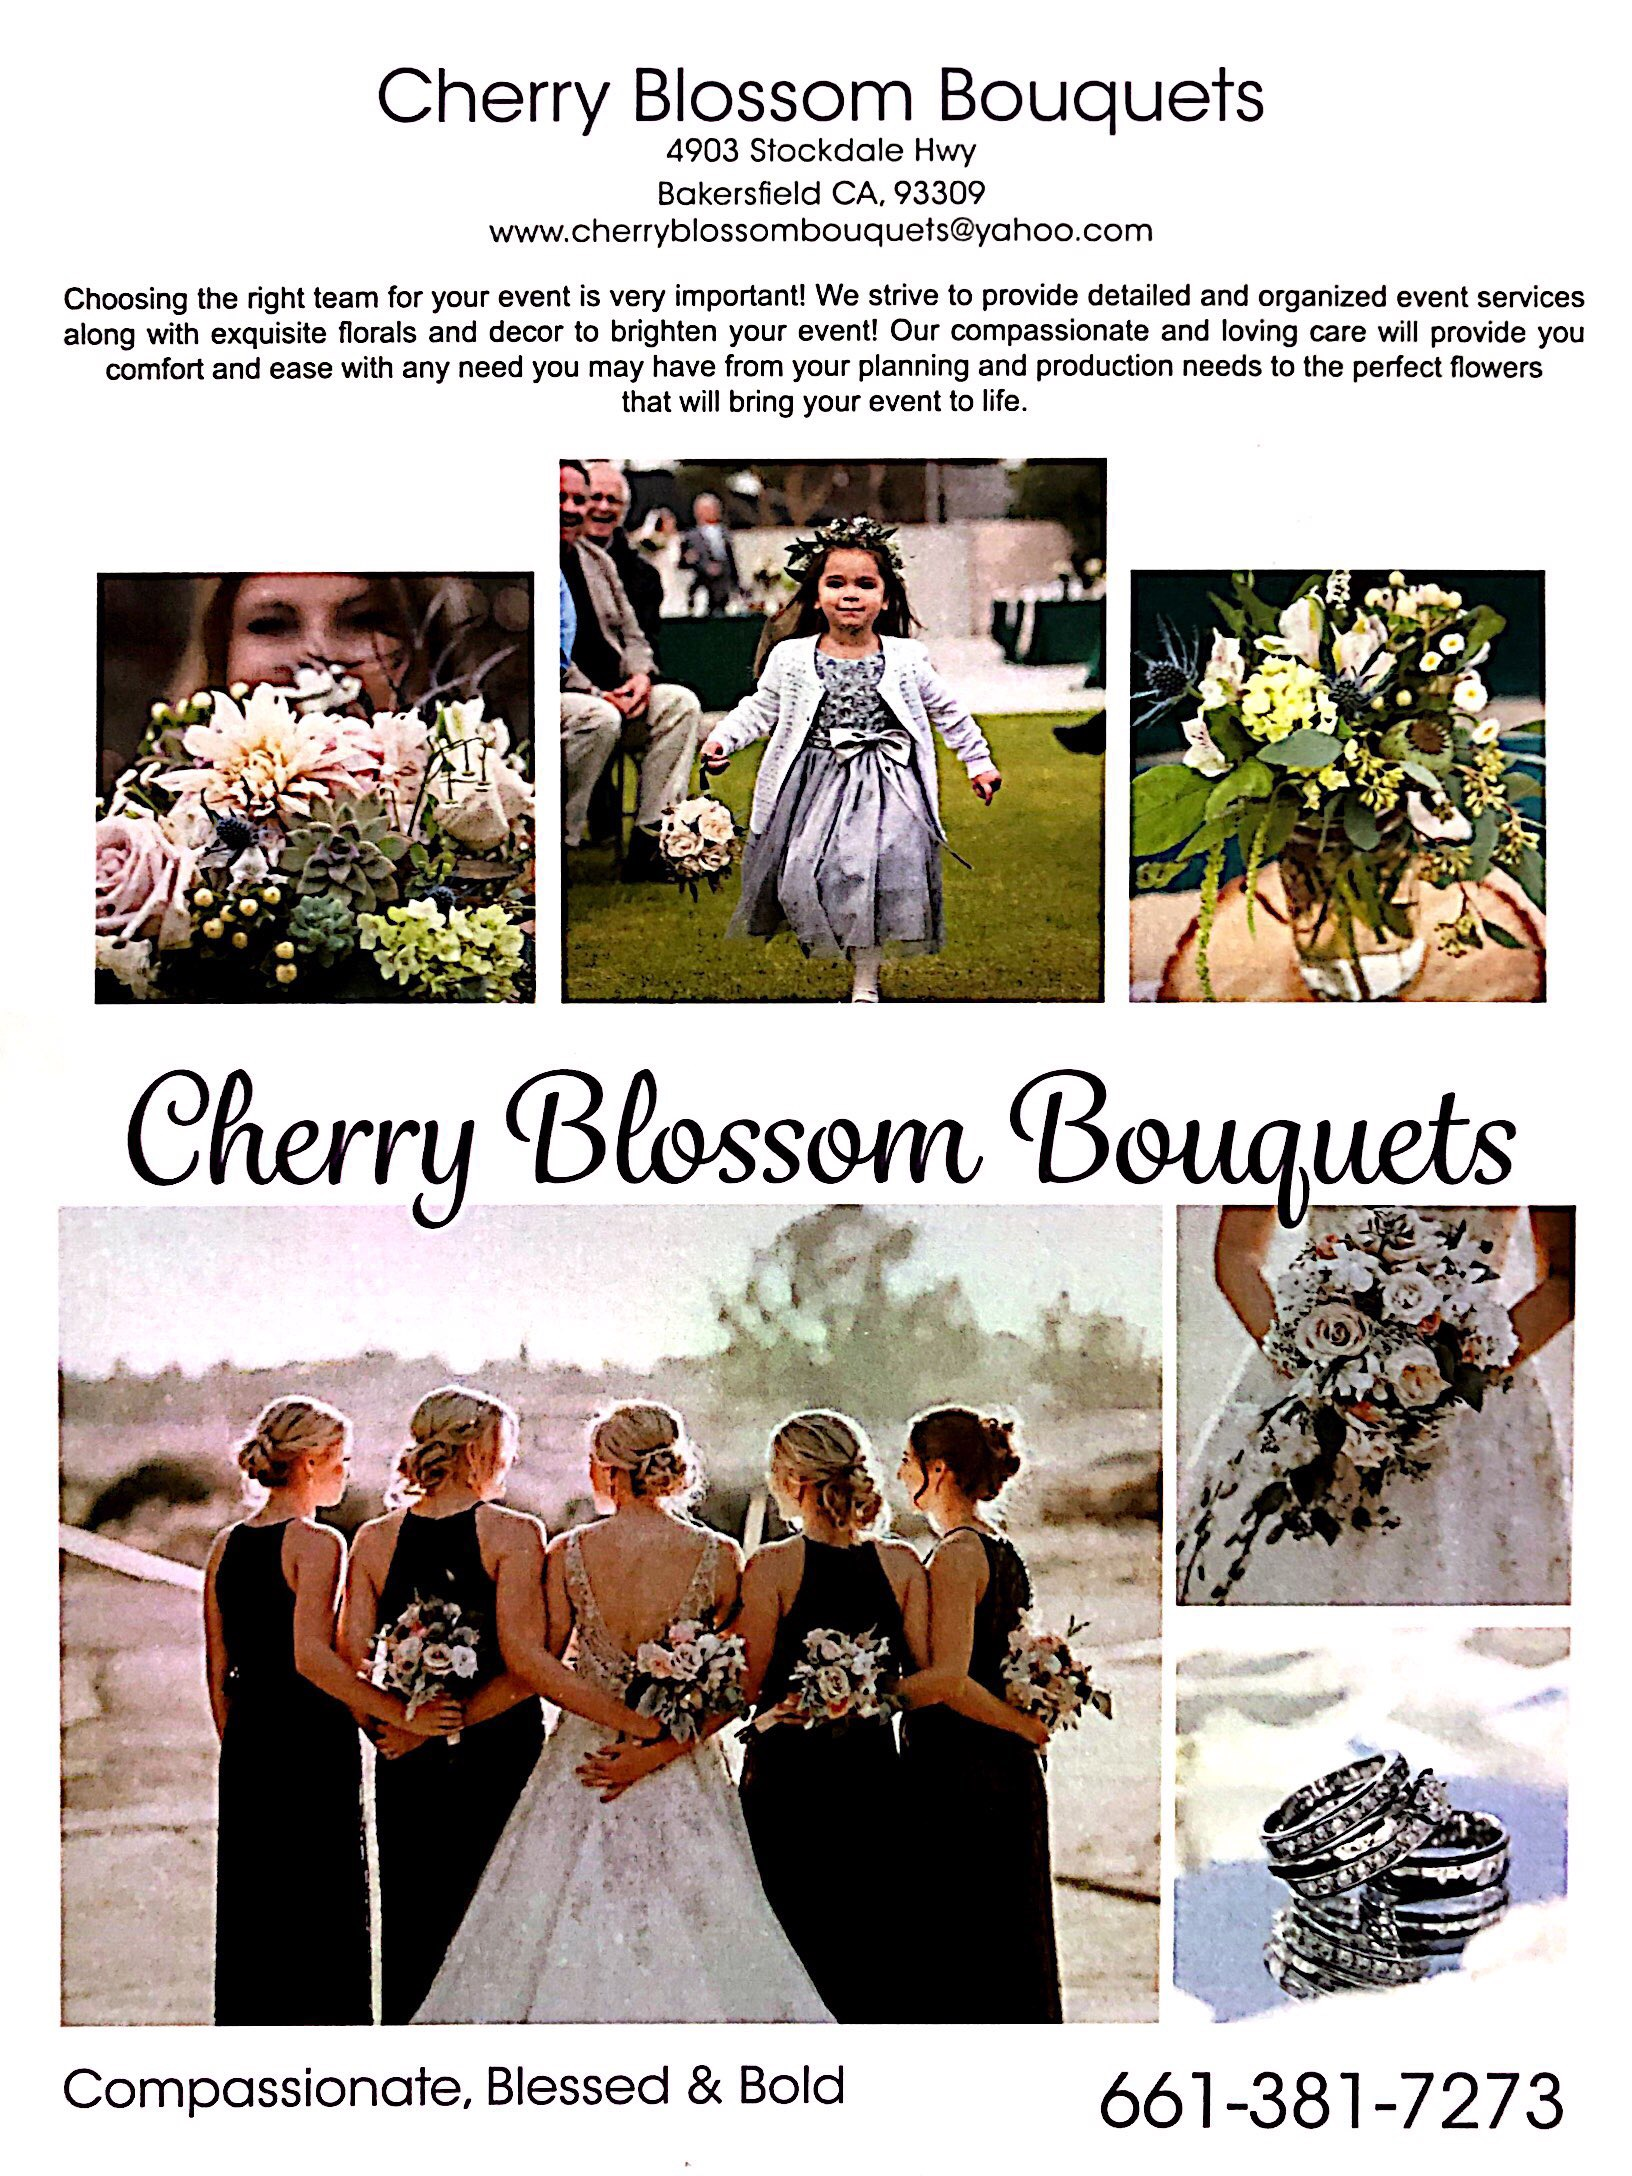 Cherry Blossom Bouquets